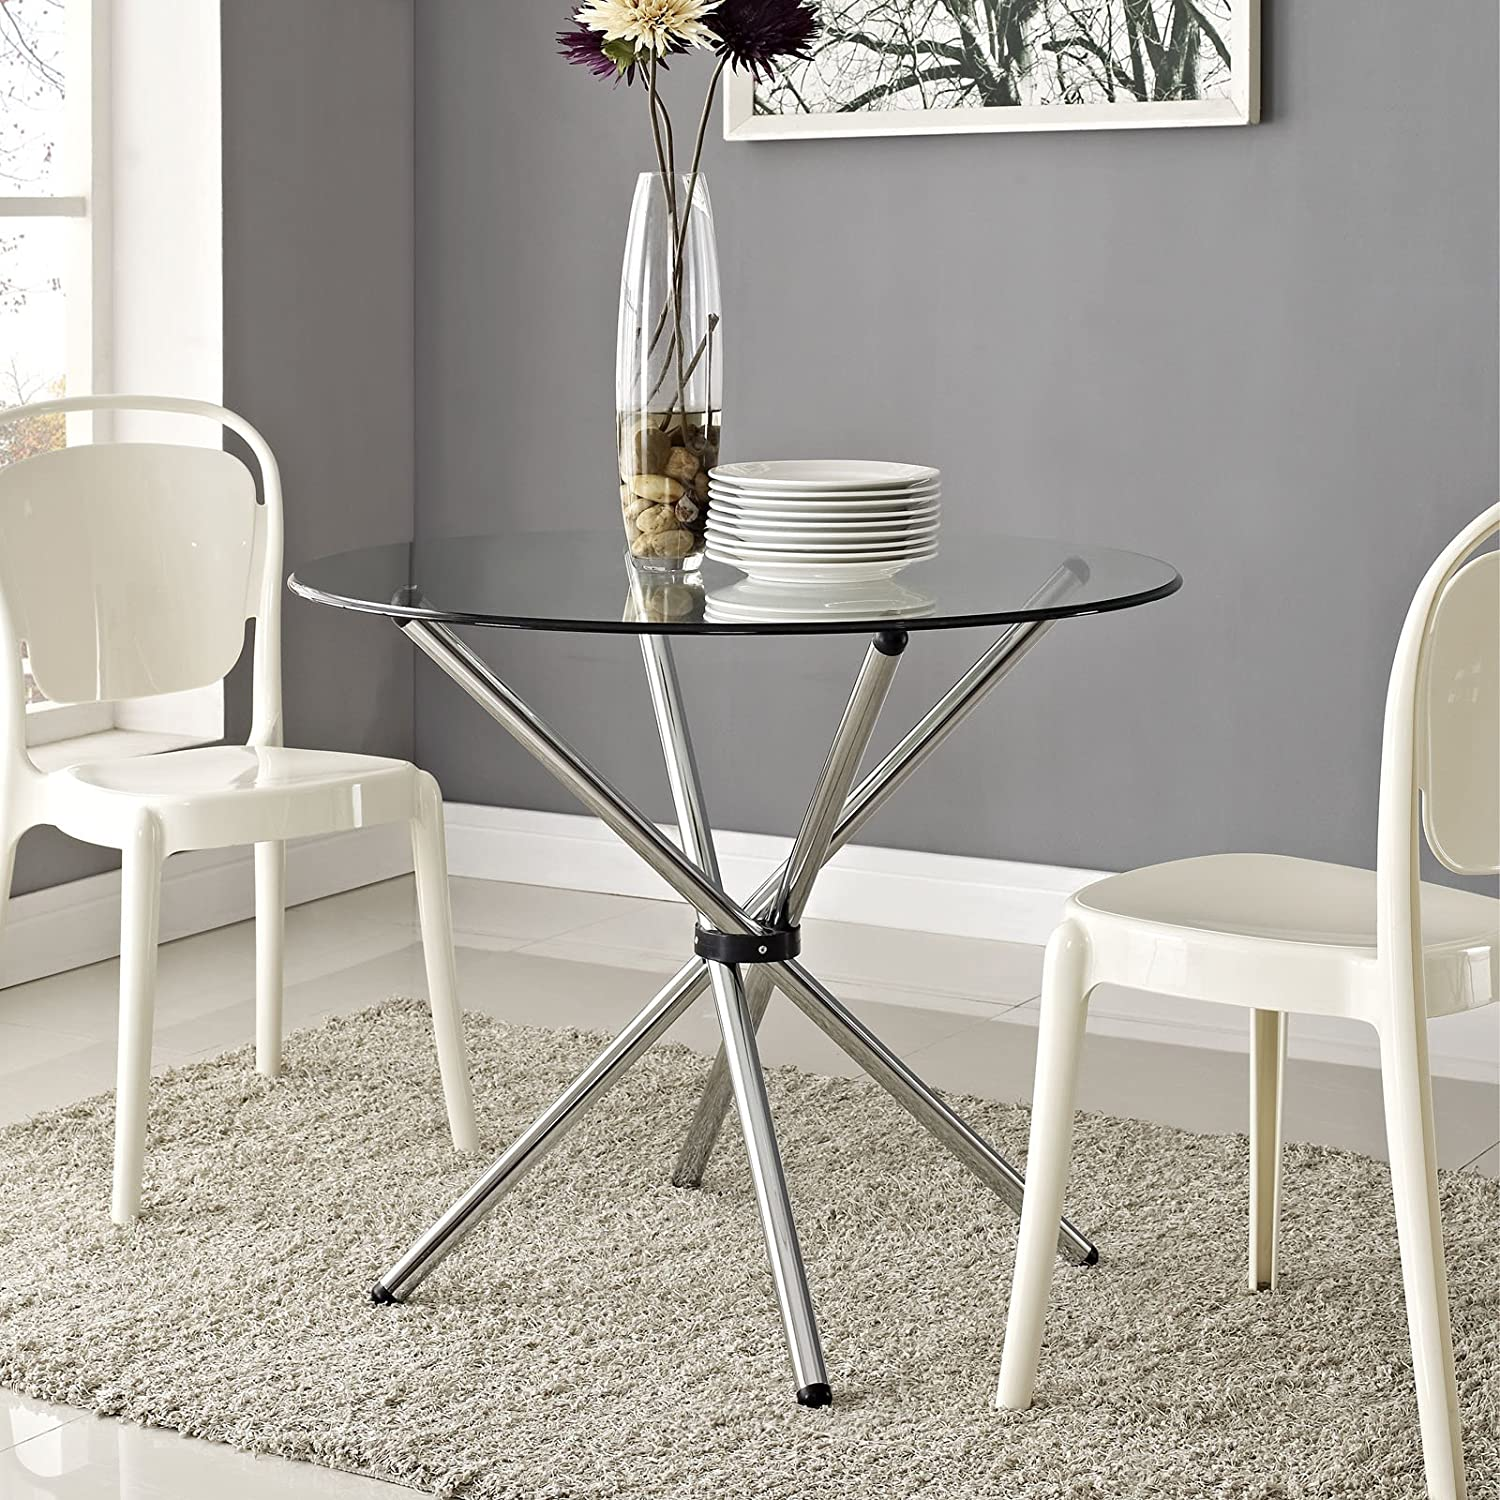 Modway Baton 36 Modern Kitchen and Dining Table with Round Glass Top and Stainless Steel Base